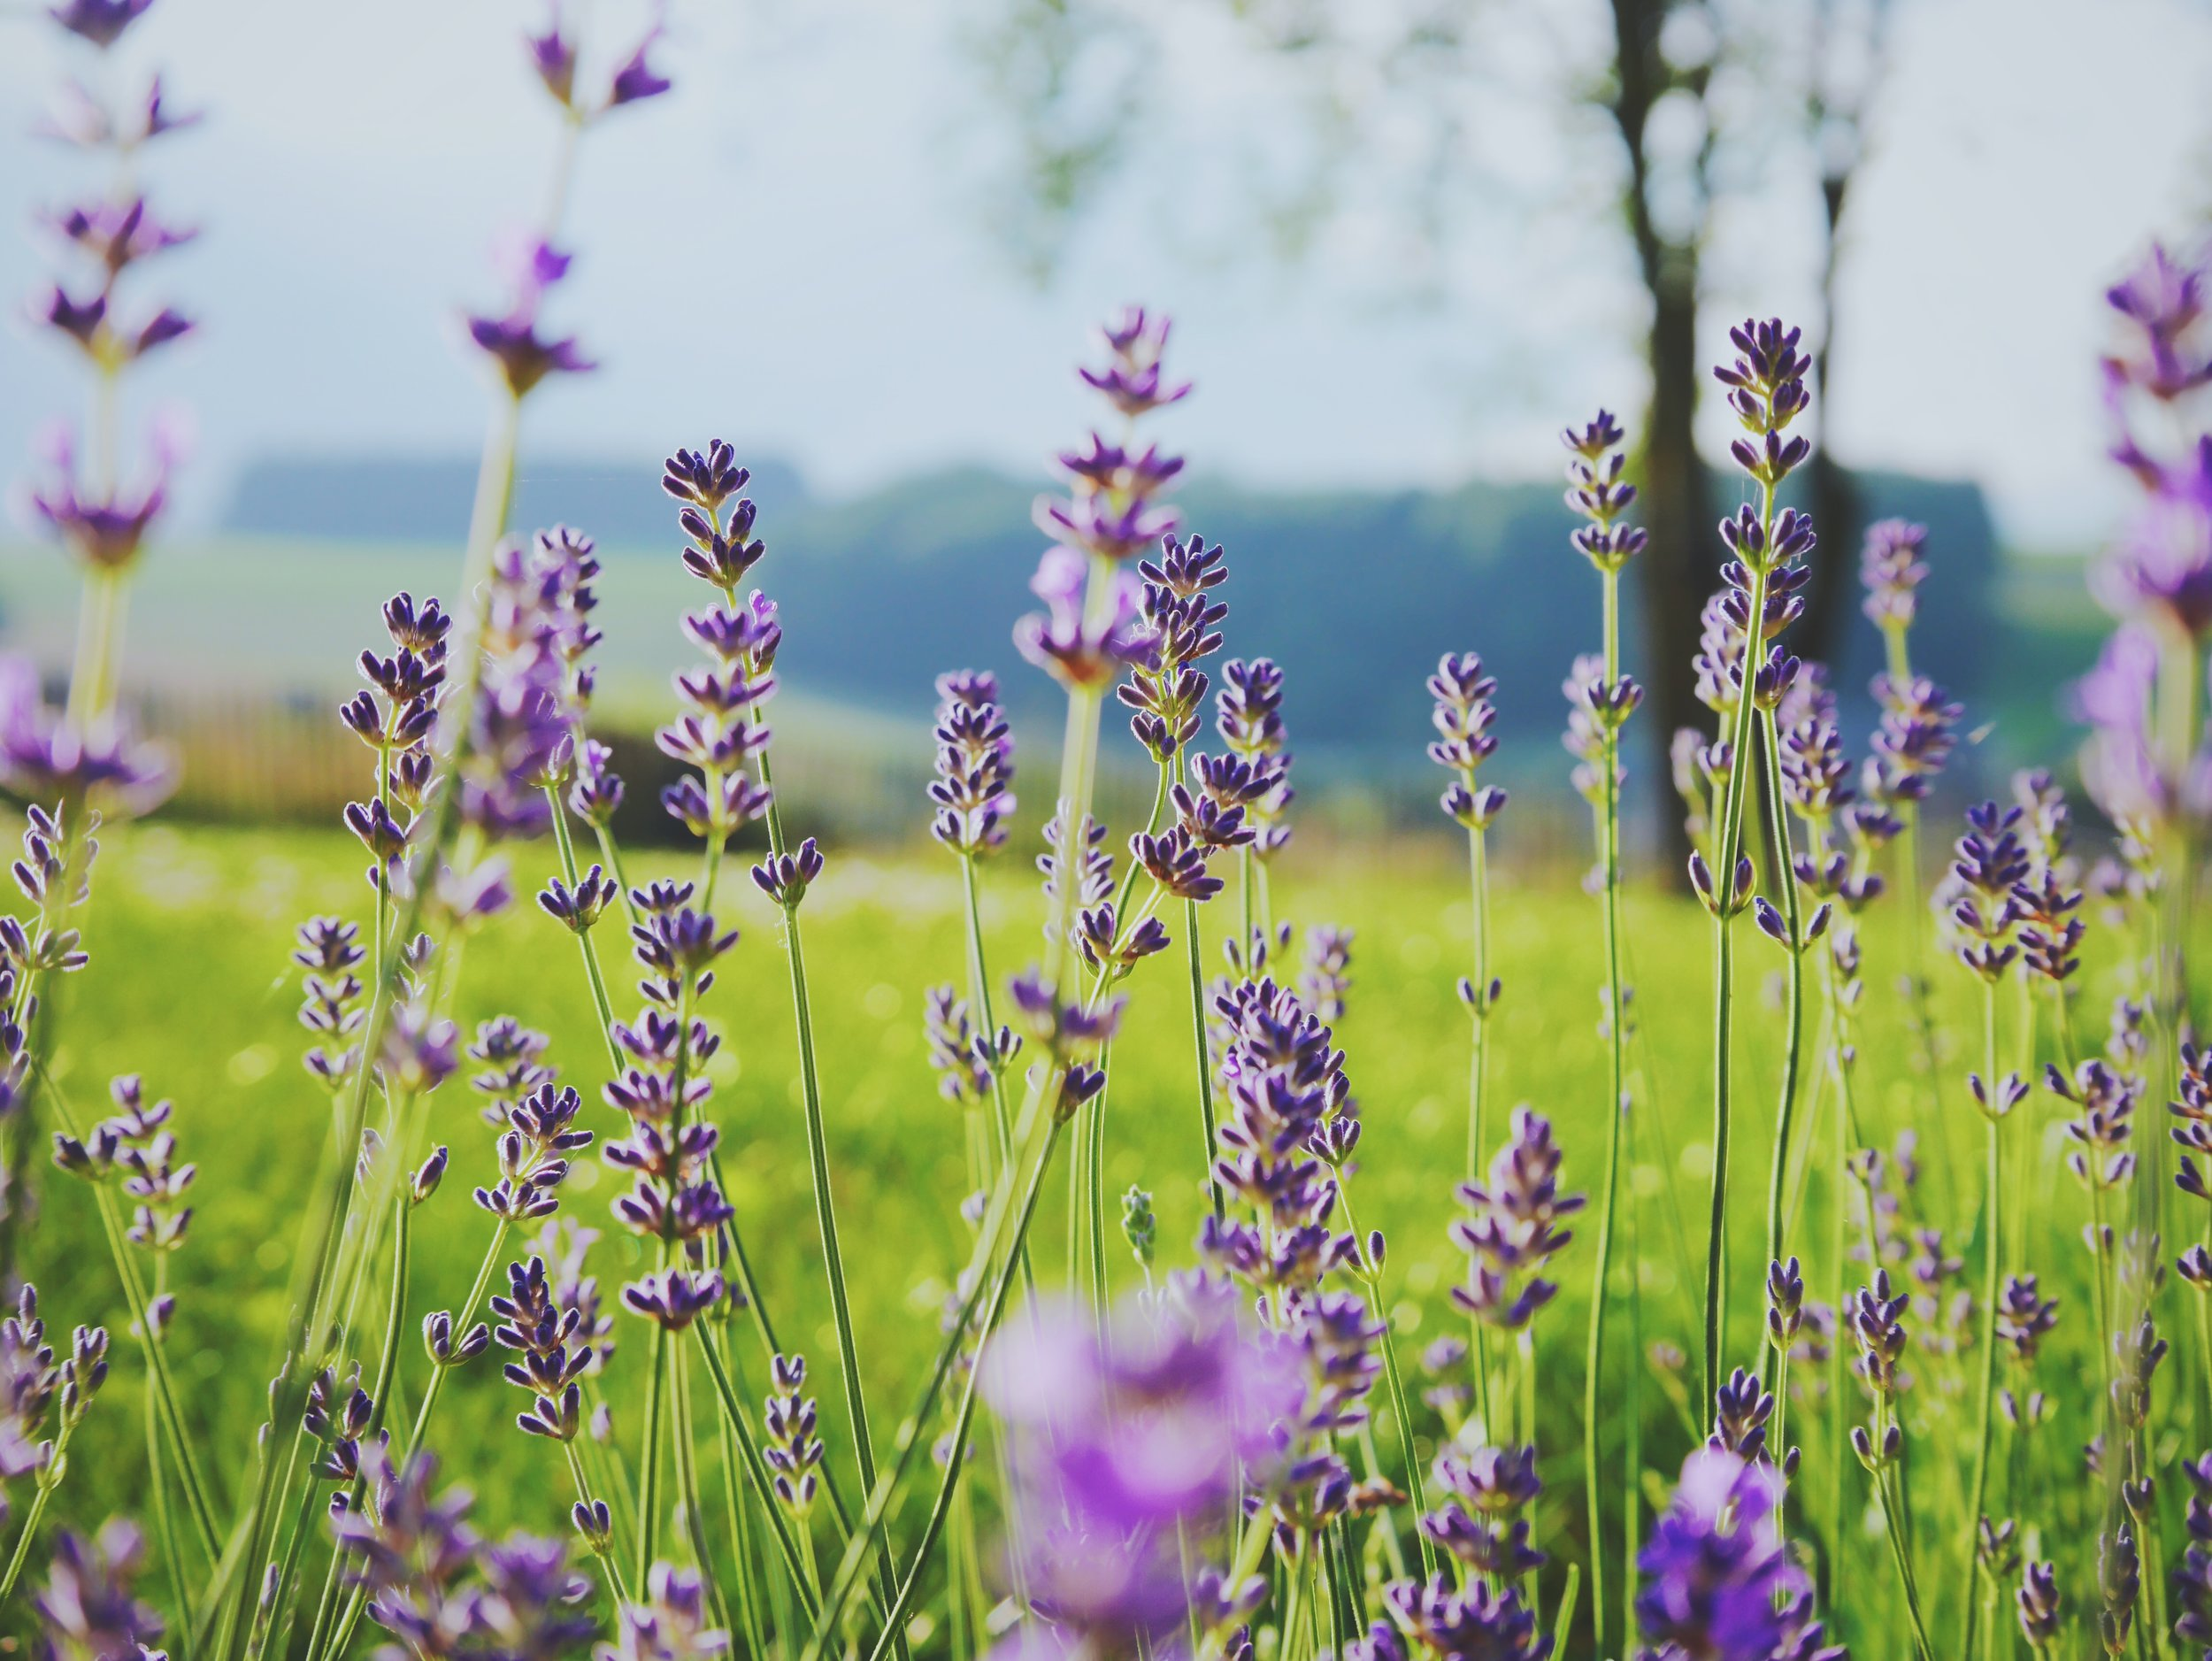 Organic Lavender Oil - its soothing, healing properties have the ability to balance sebum production and repair damaged skin. The fresh scent has a relaxing and calming effect.